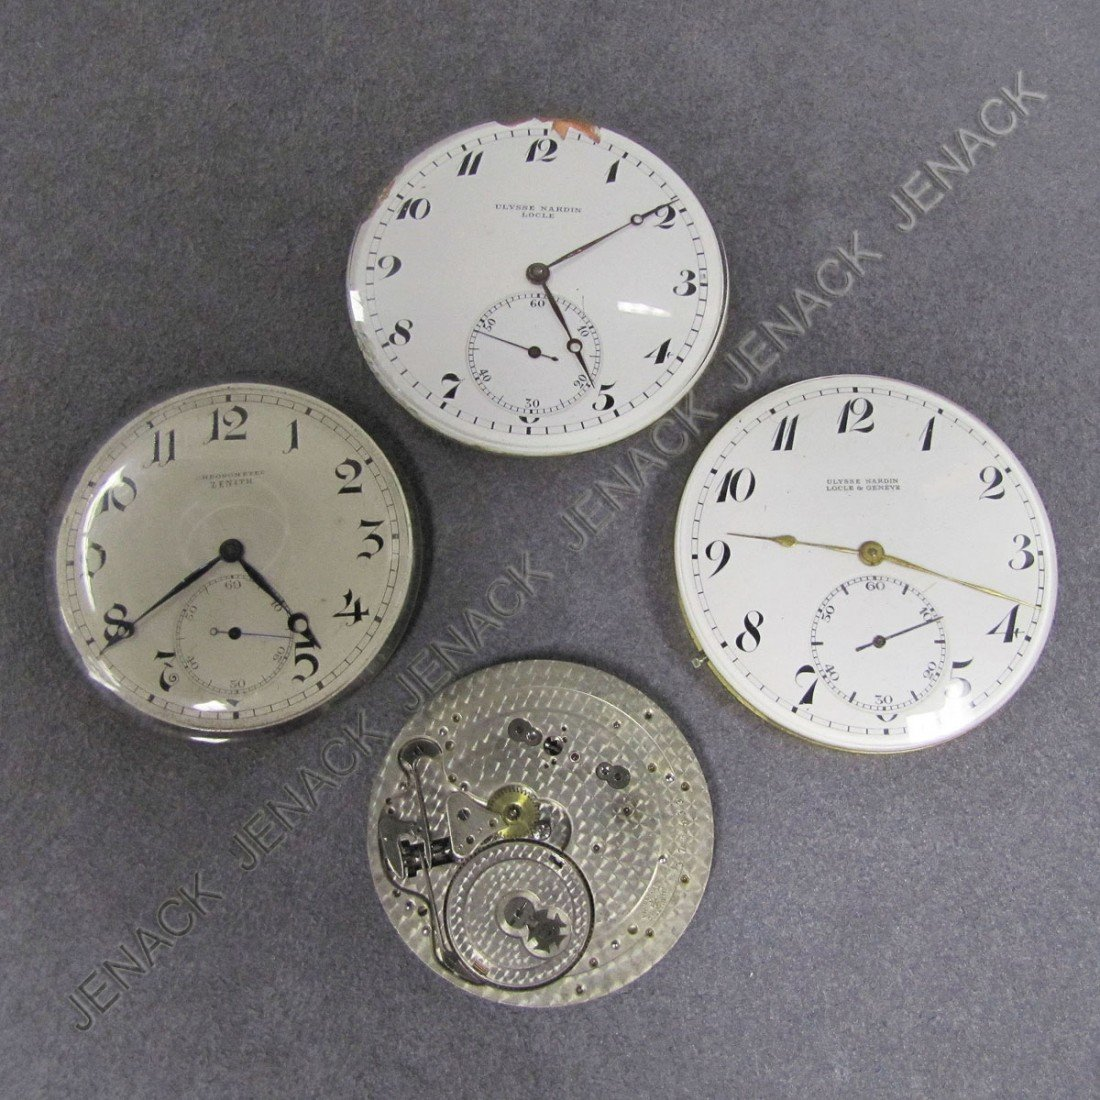 5: LOT (4) VINTAGE POCKET WATCH MOVEMENTS